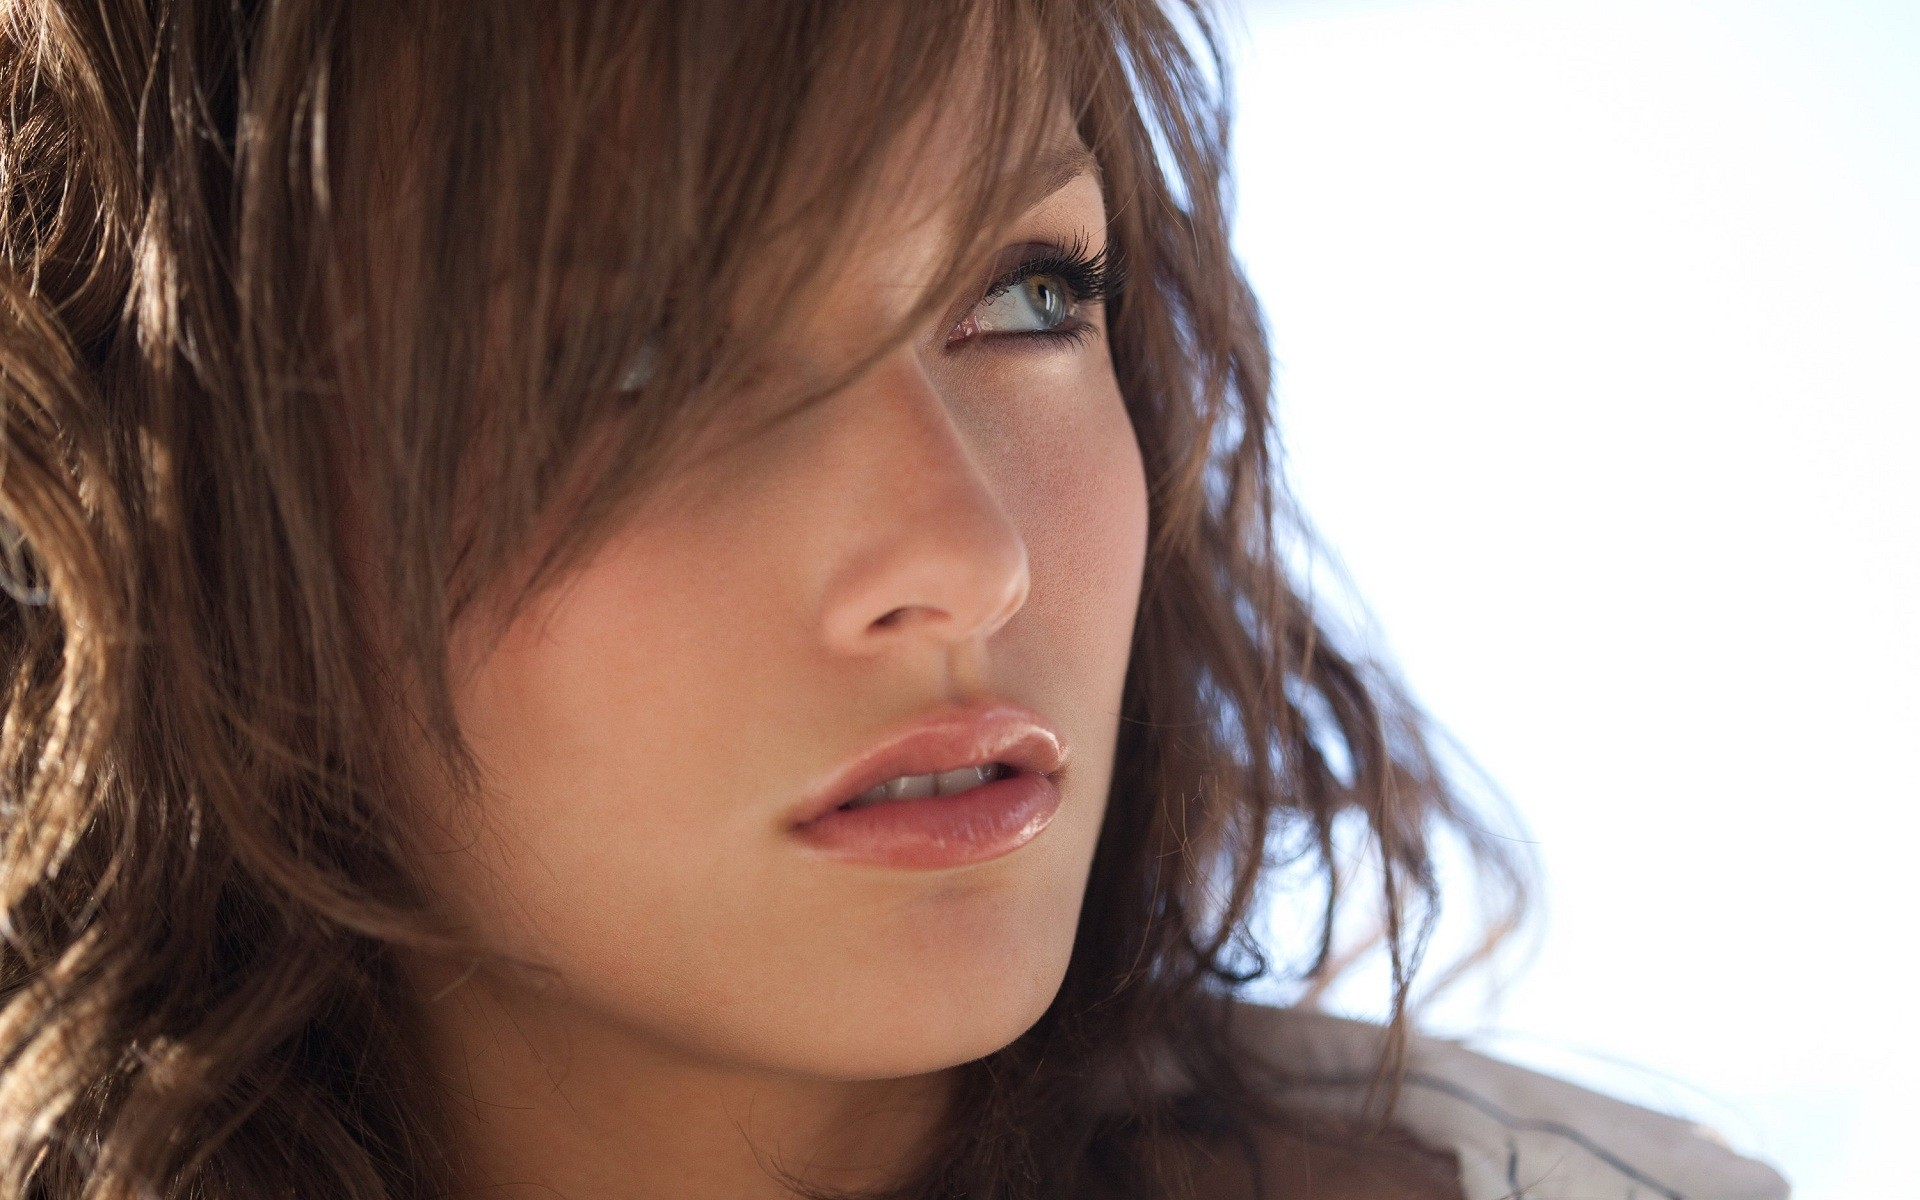 malena morgan face makeup wallpaper 60323